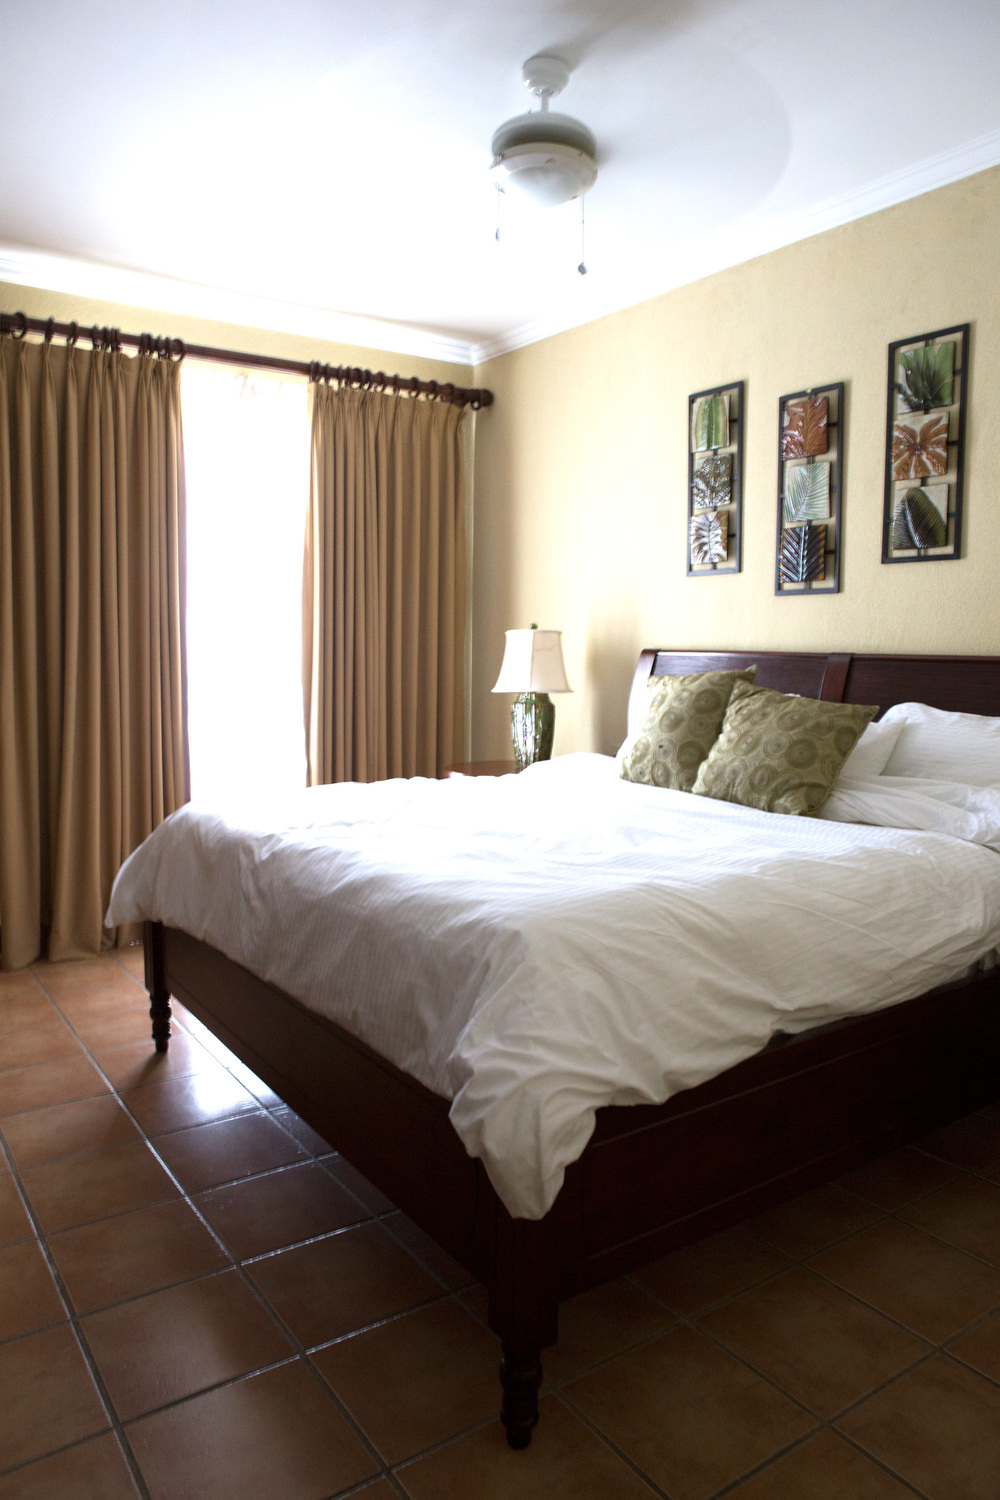 Master Bedroom at Reserva Conchal, Costa Rica